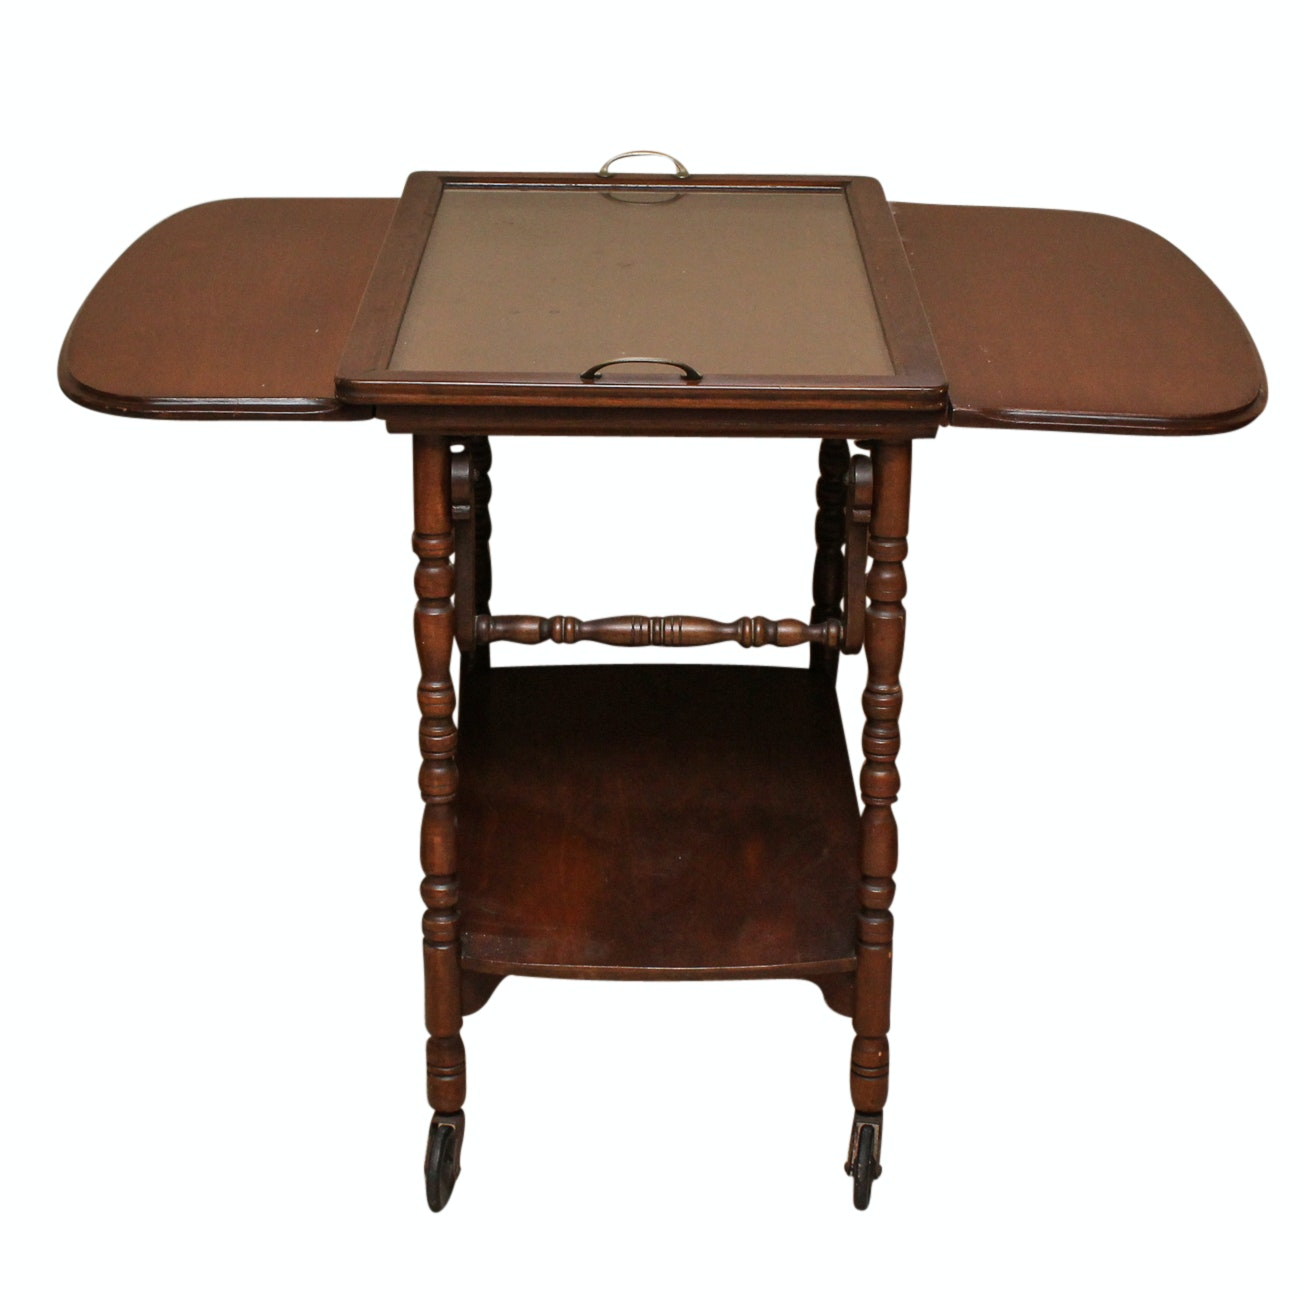 Wooden Drop Leaf Butlers Table